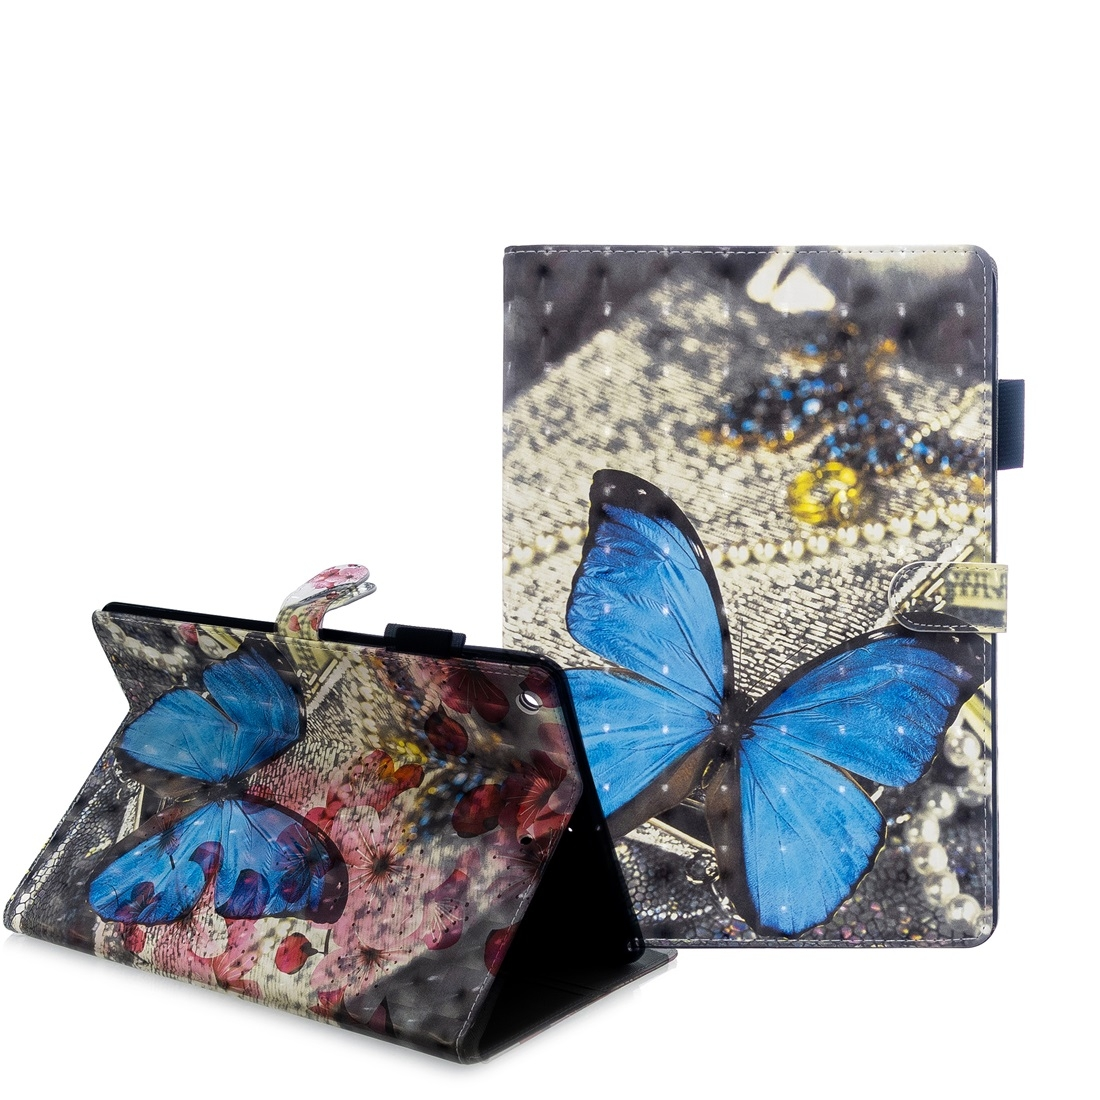 iPad 7th Generation Case (10.2 Inch) 3D Embossing Leather Case & Slim Profile (Flower Butterfly)